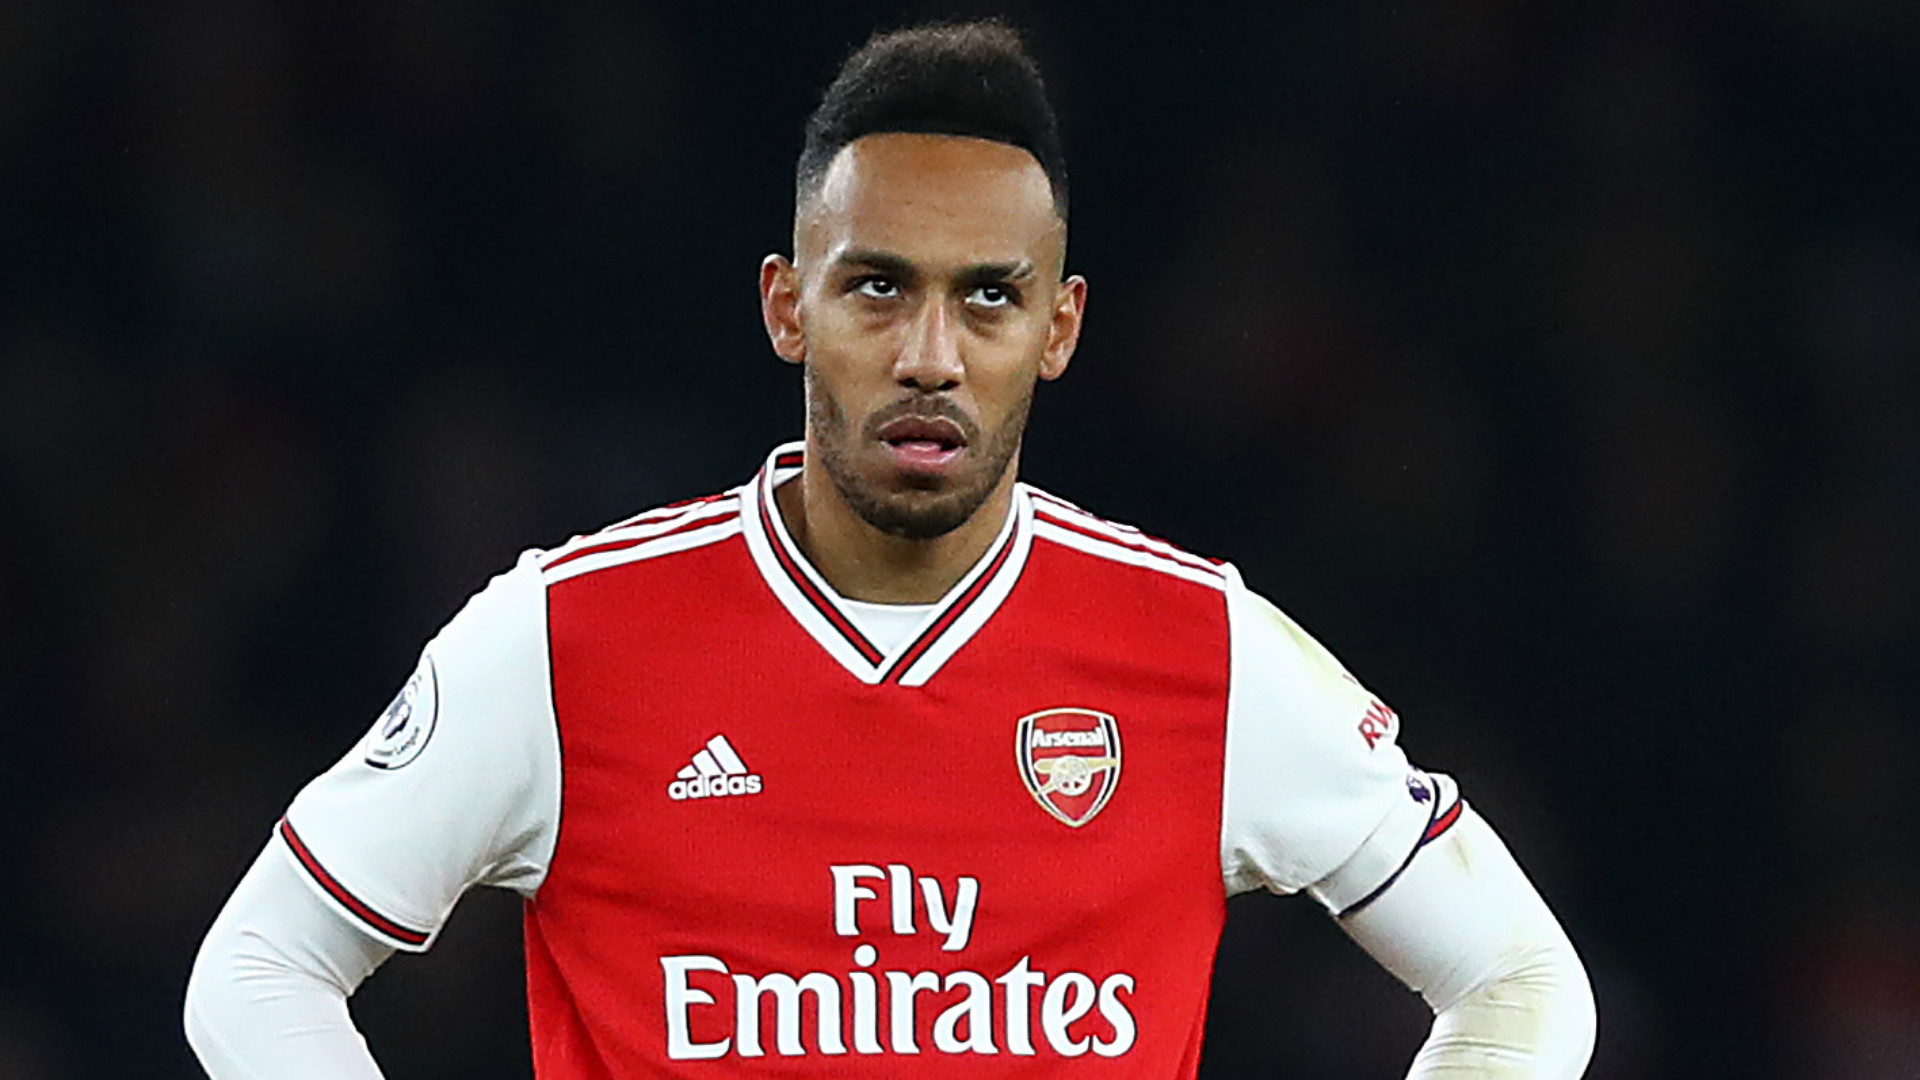 'If Aubameyang leaves on a free, who cares?' – Arsenal don't need to worry about exit talk, says Merson